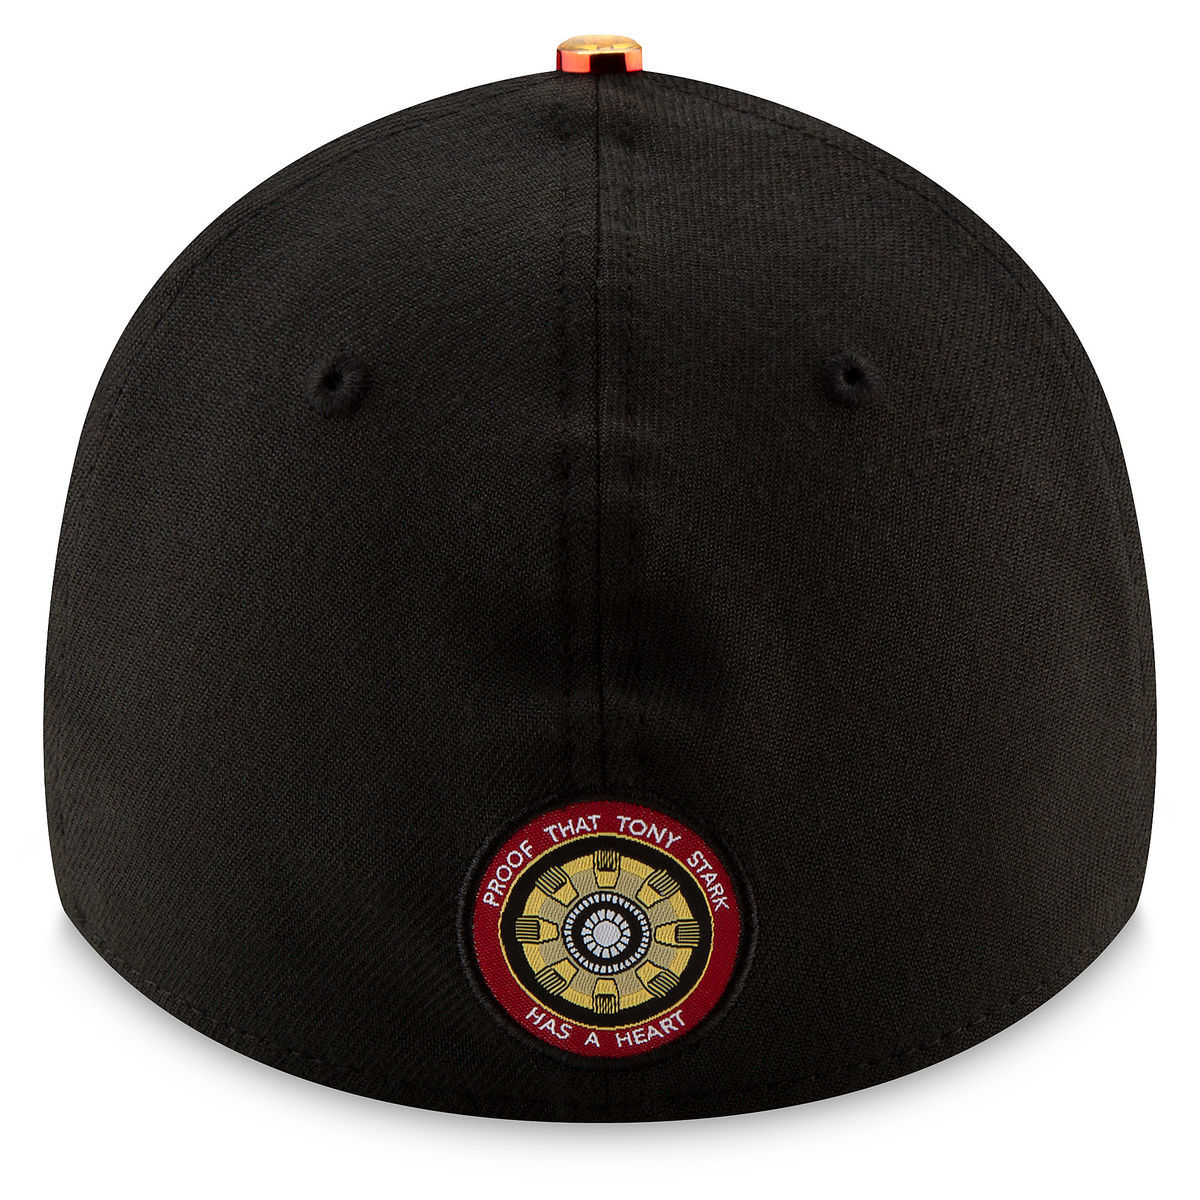 Limited Edition Collector Boxed Iron Man Cap by New Era - Marvel Studios  Crew Cap Collection 0cfdcc4ba991